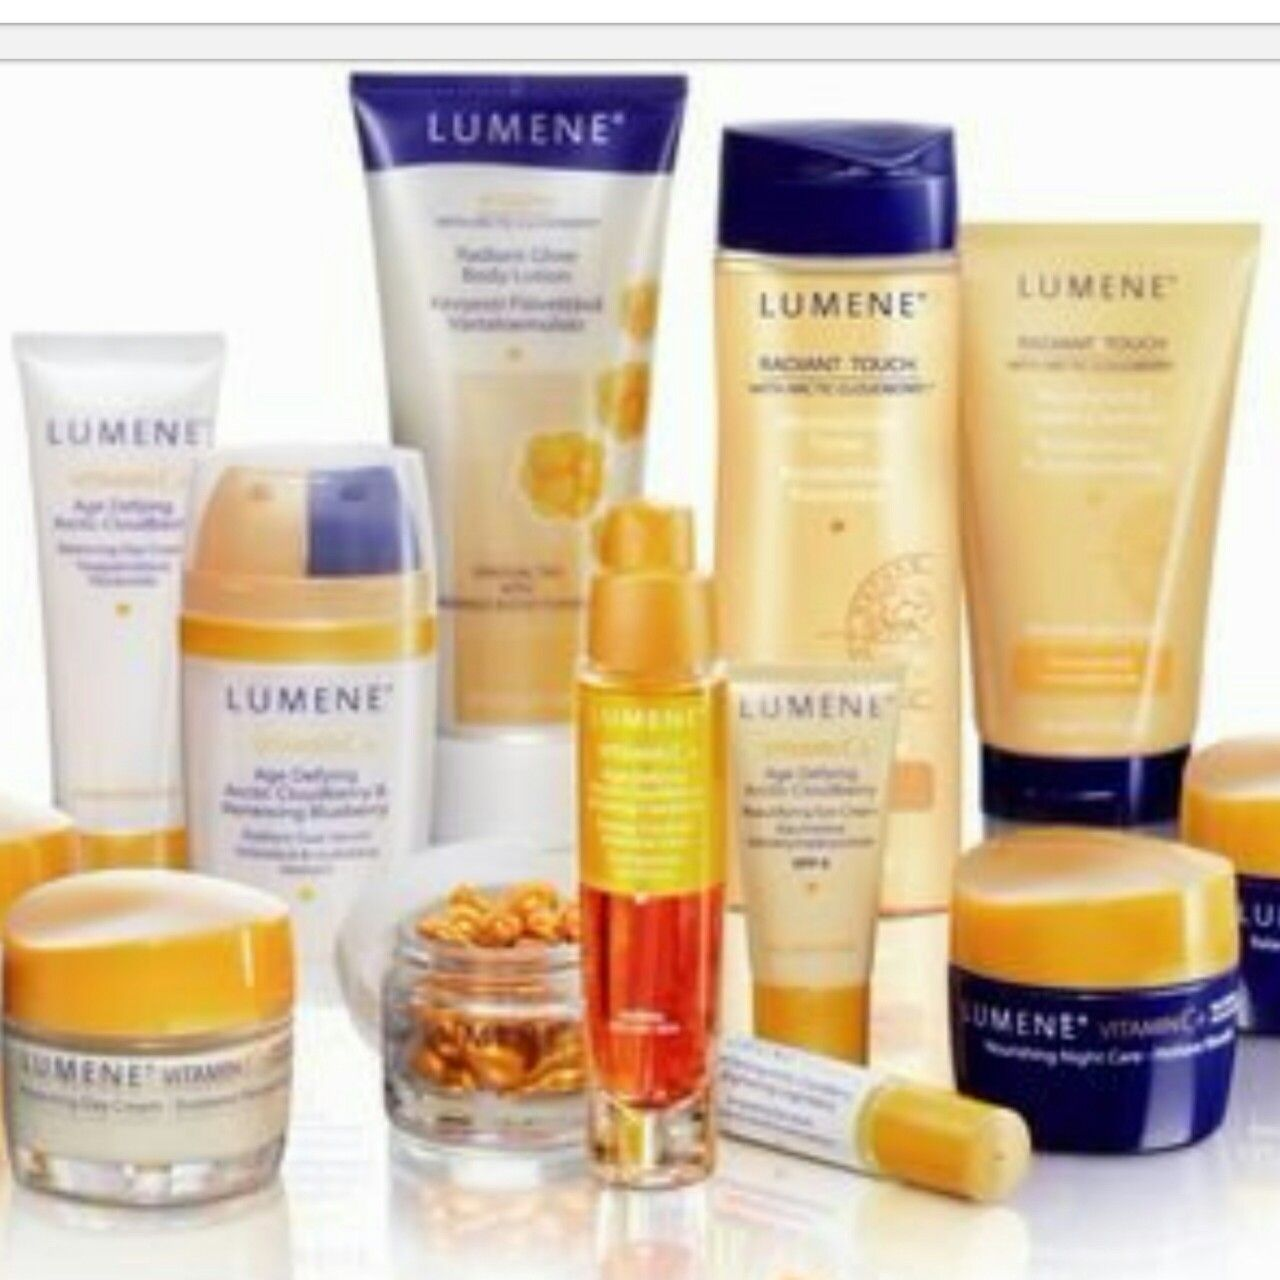 Try Lumene products!